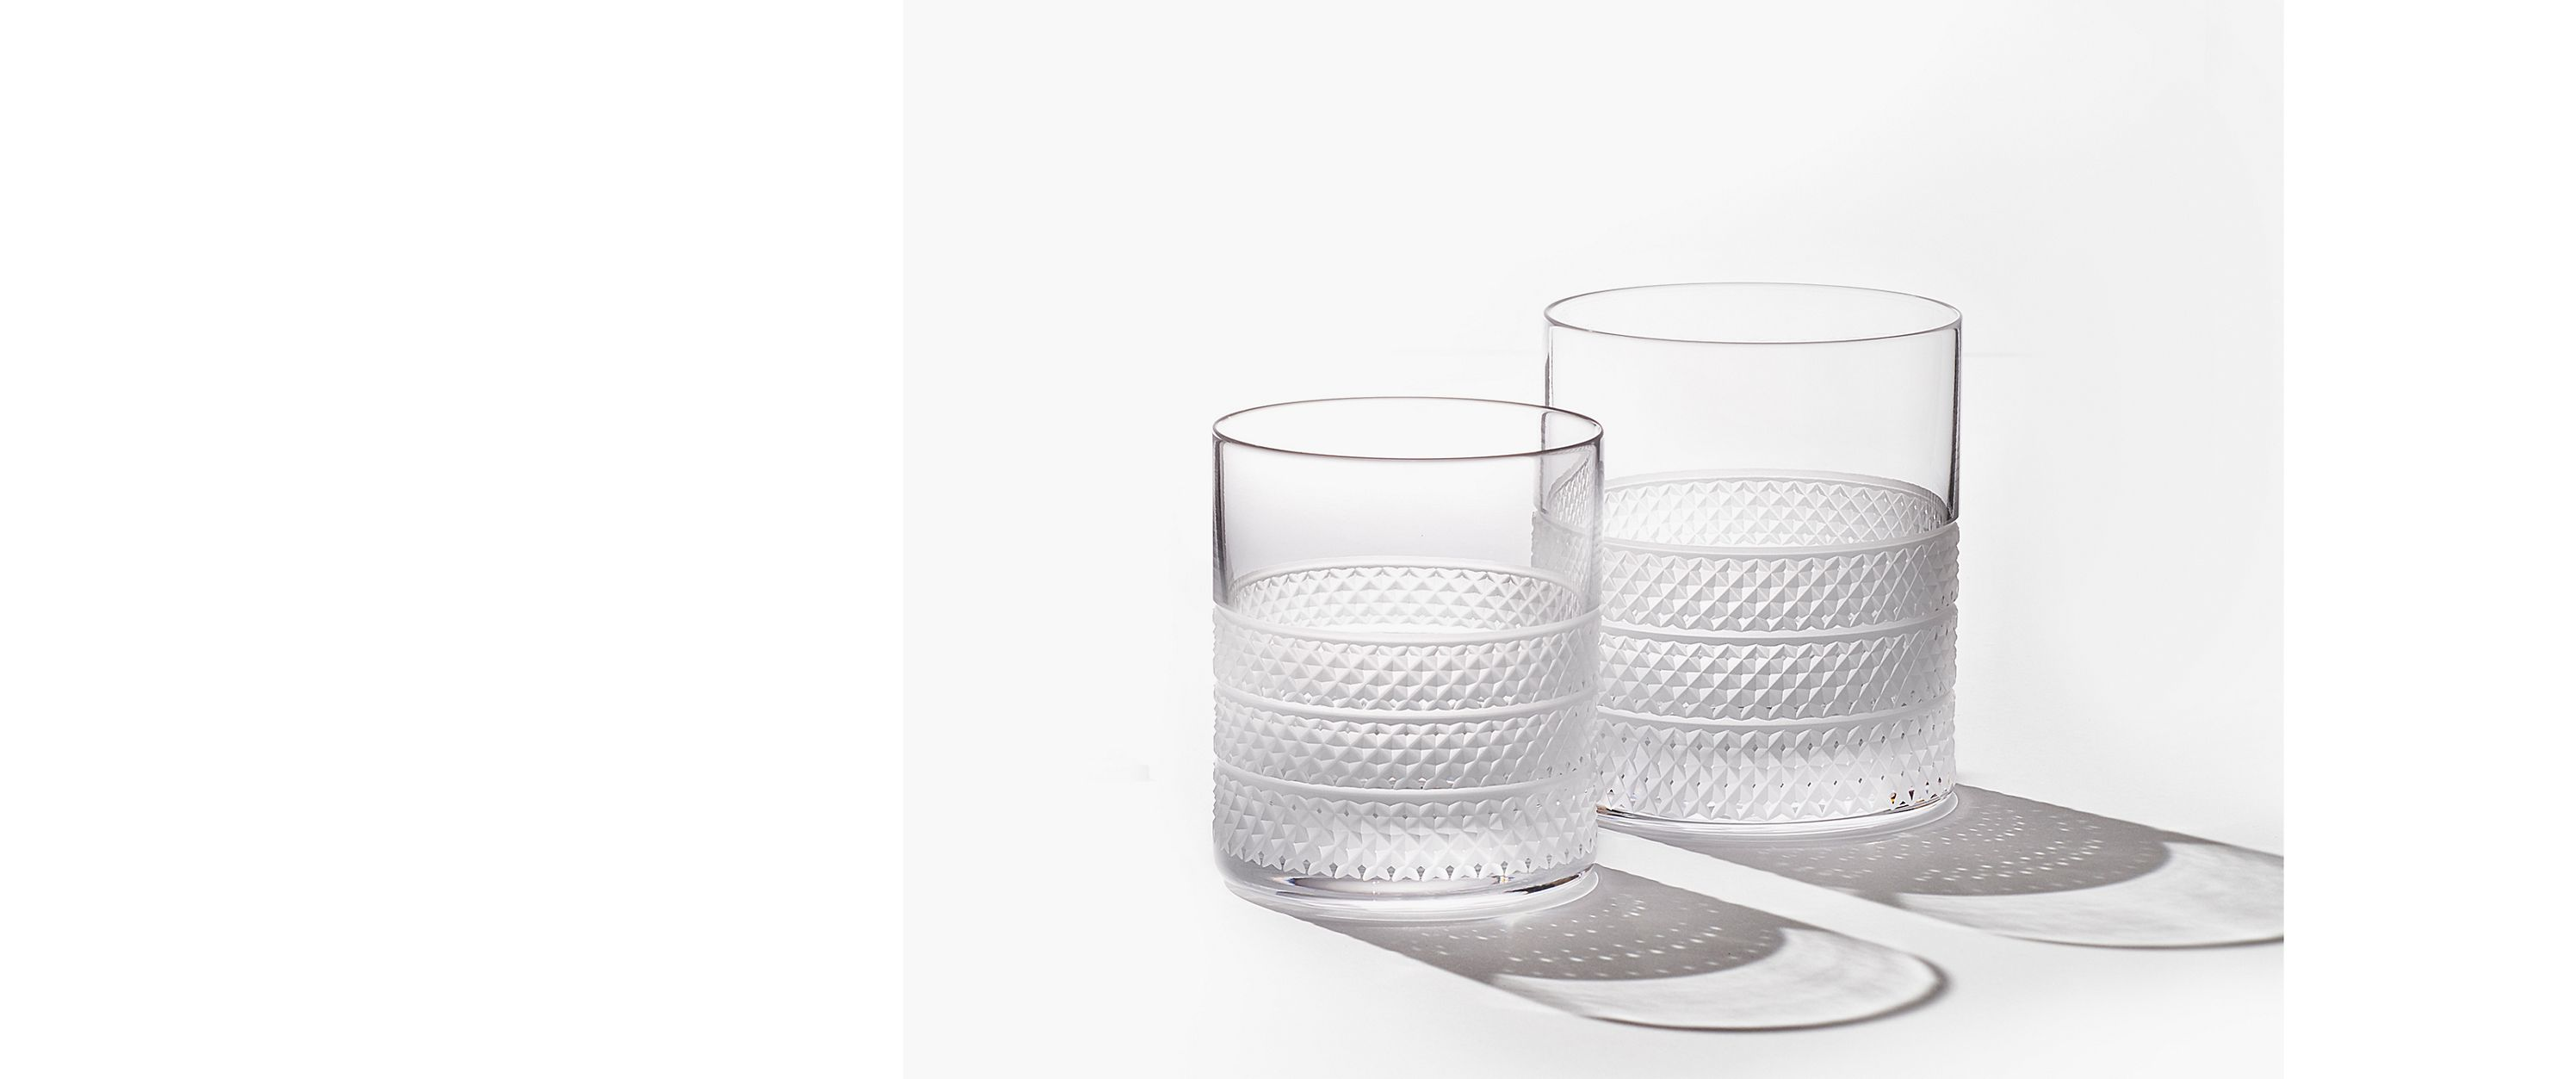 Tiffany & Co. Old-fashioned Glass